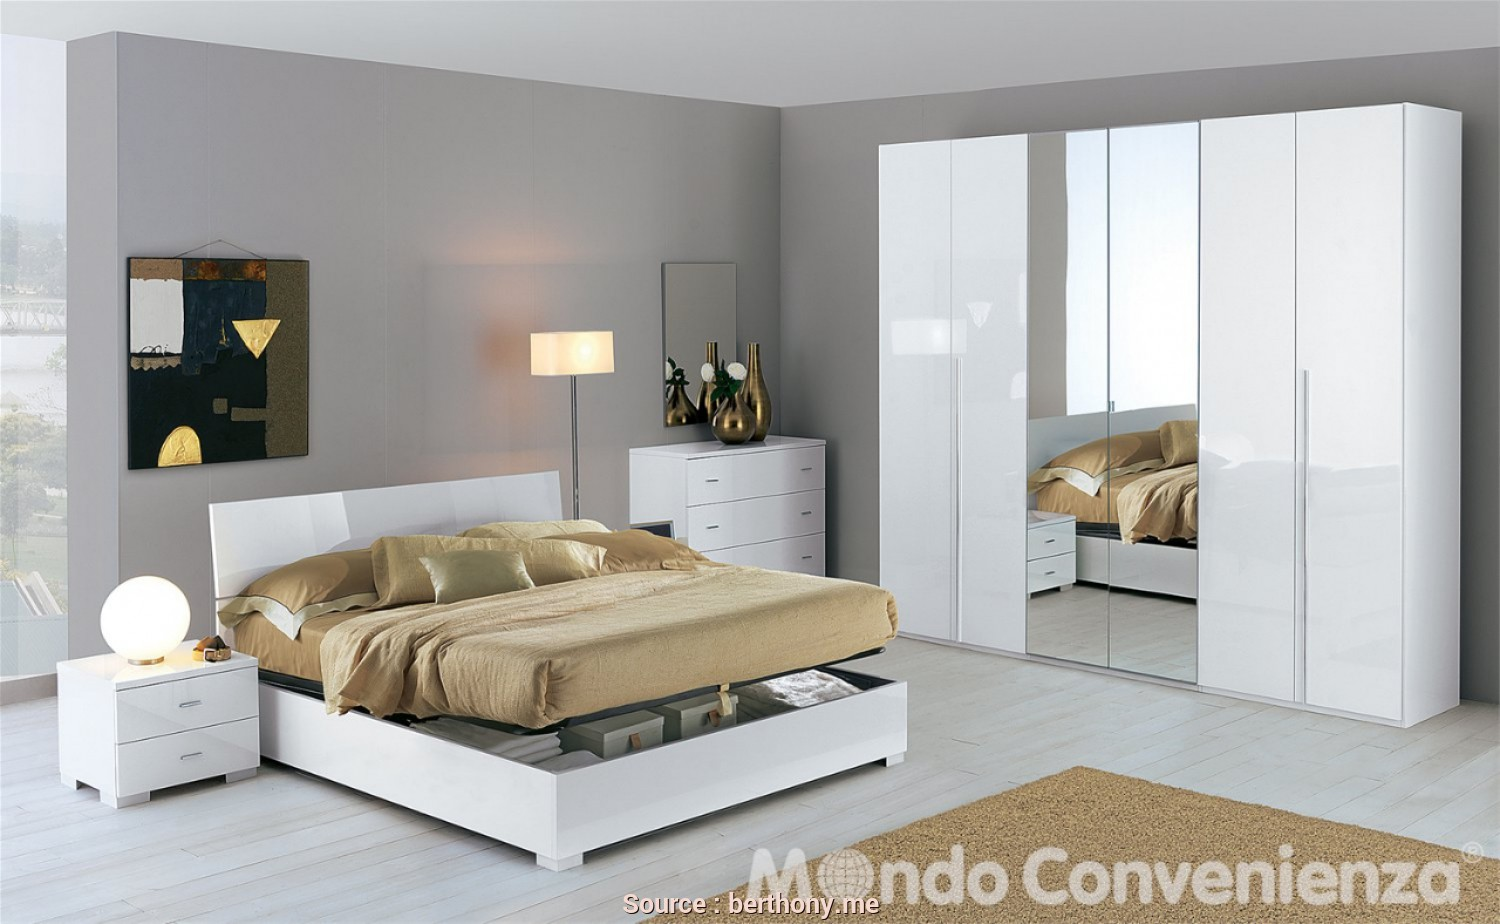 Casuale 6 Camera, Letto A Scomparsa Mondo Convenienza - Jake ...